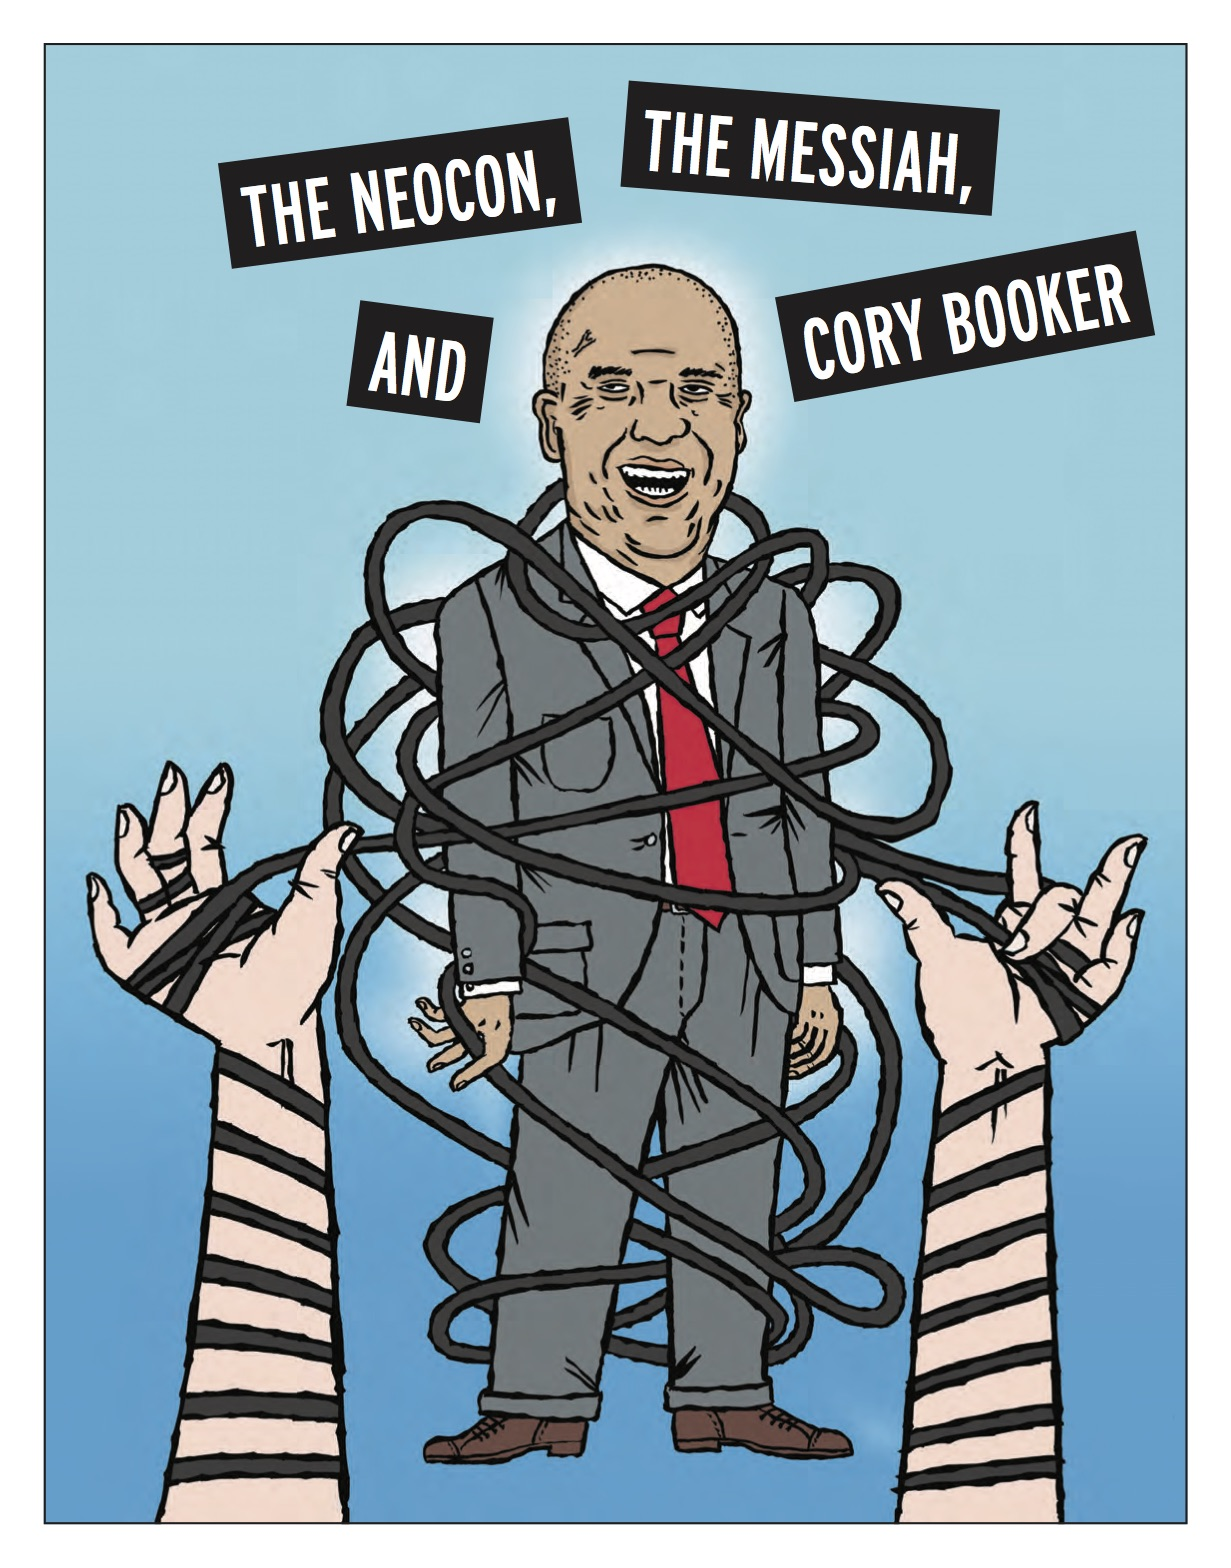 cory-booker-chabad-neocons-by-yasha-levine-nsfwcorp-sept-2013